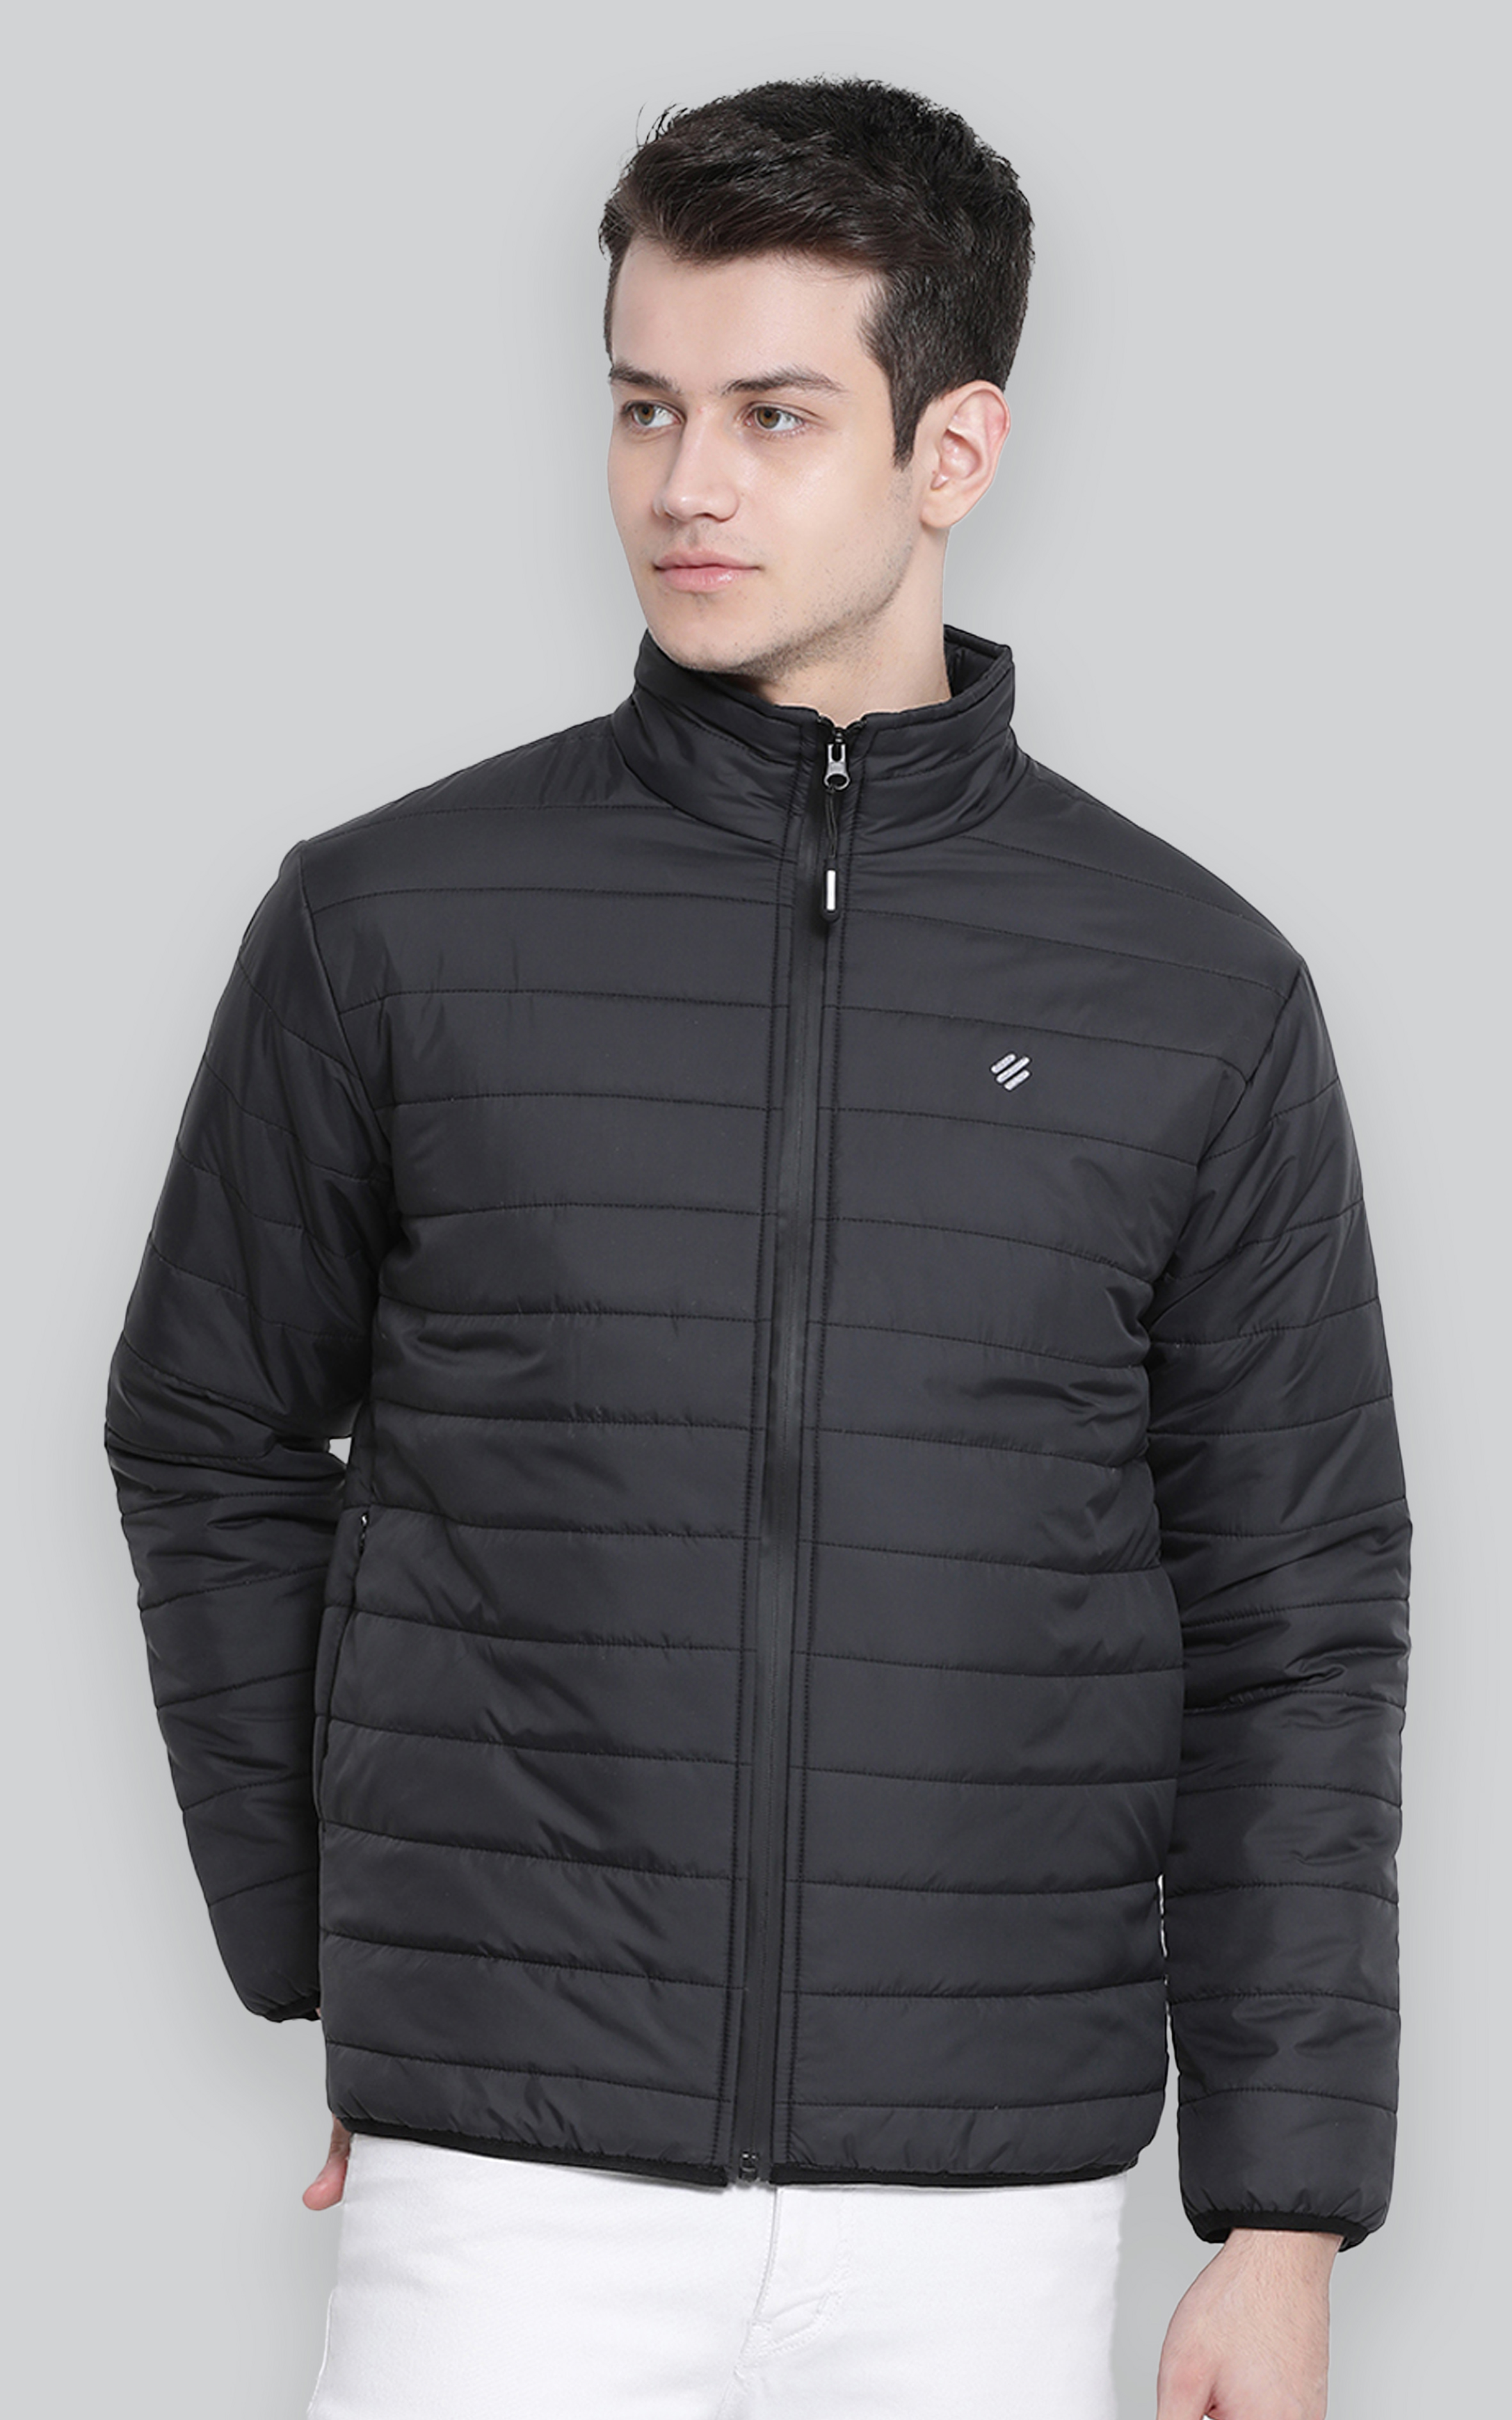 Padded Jacket Full Sleeves